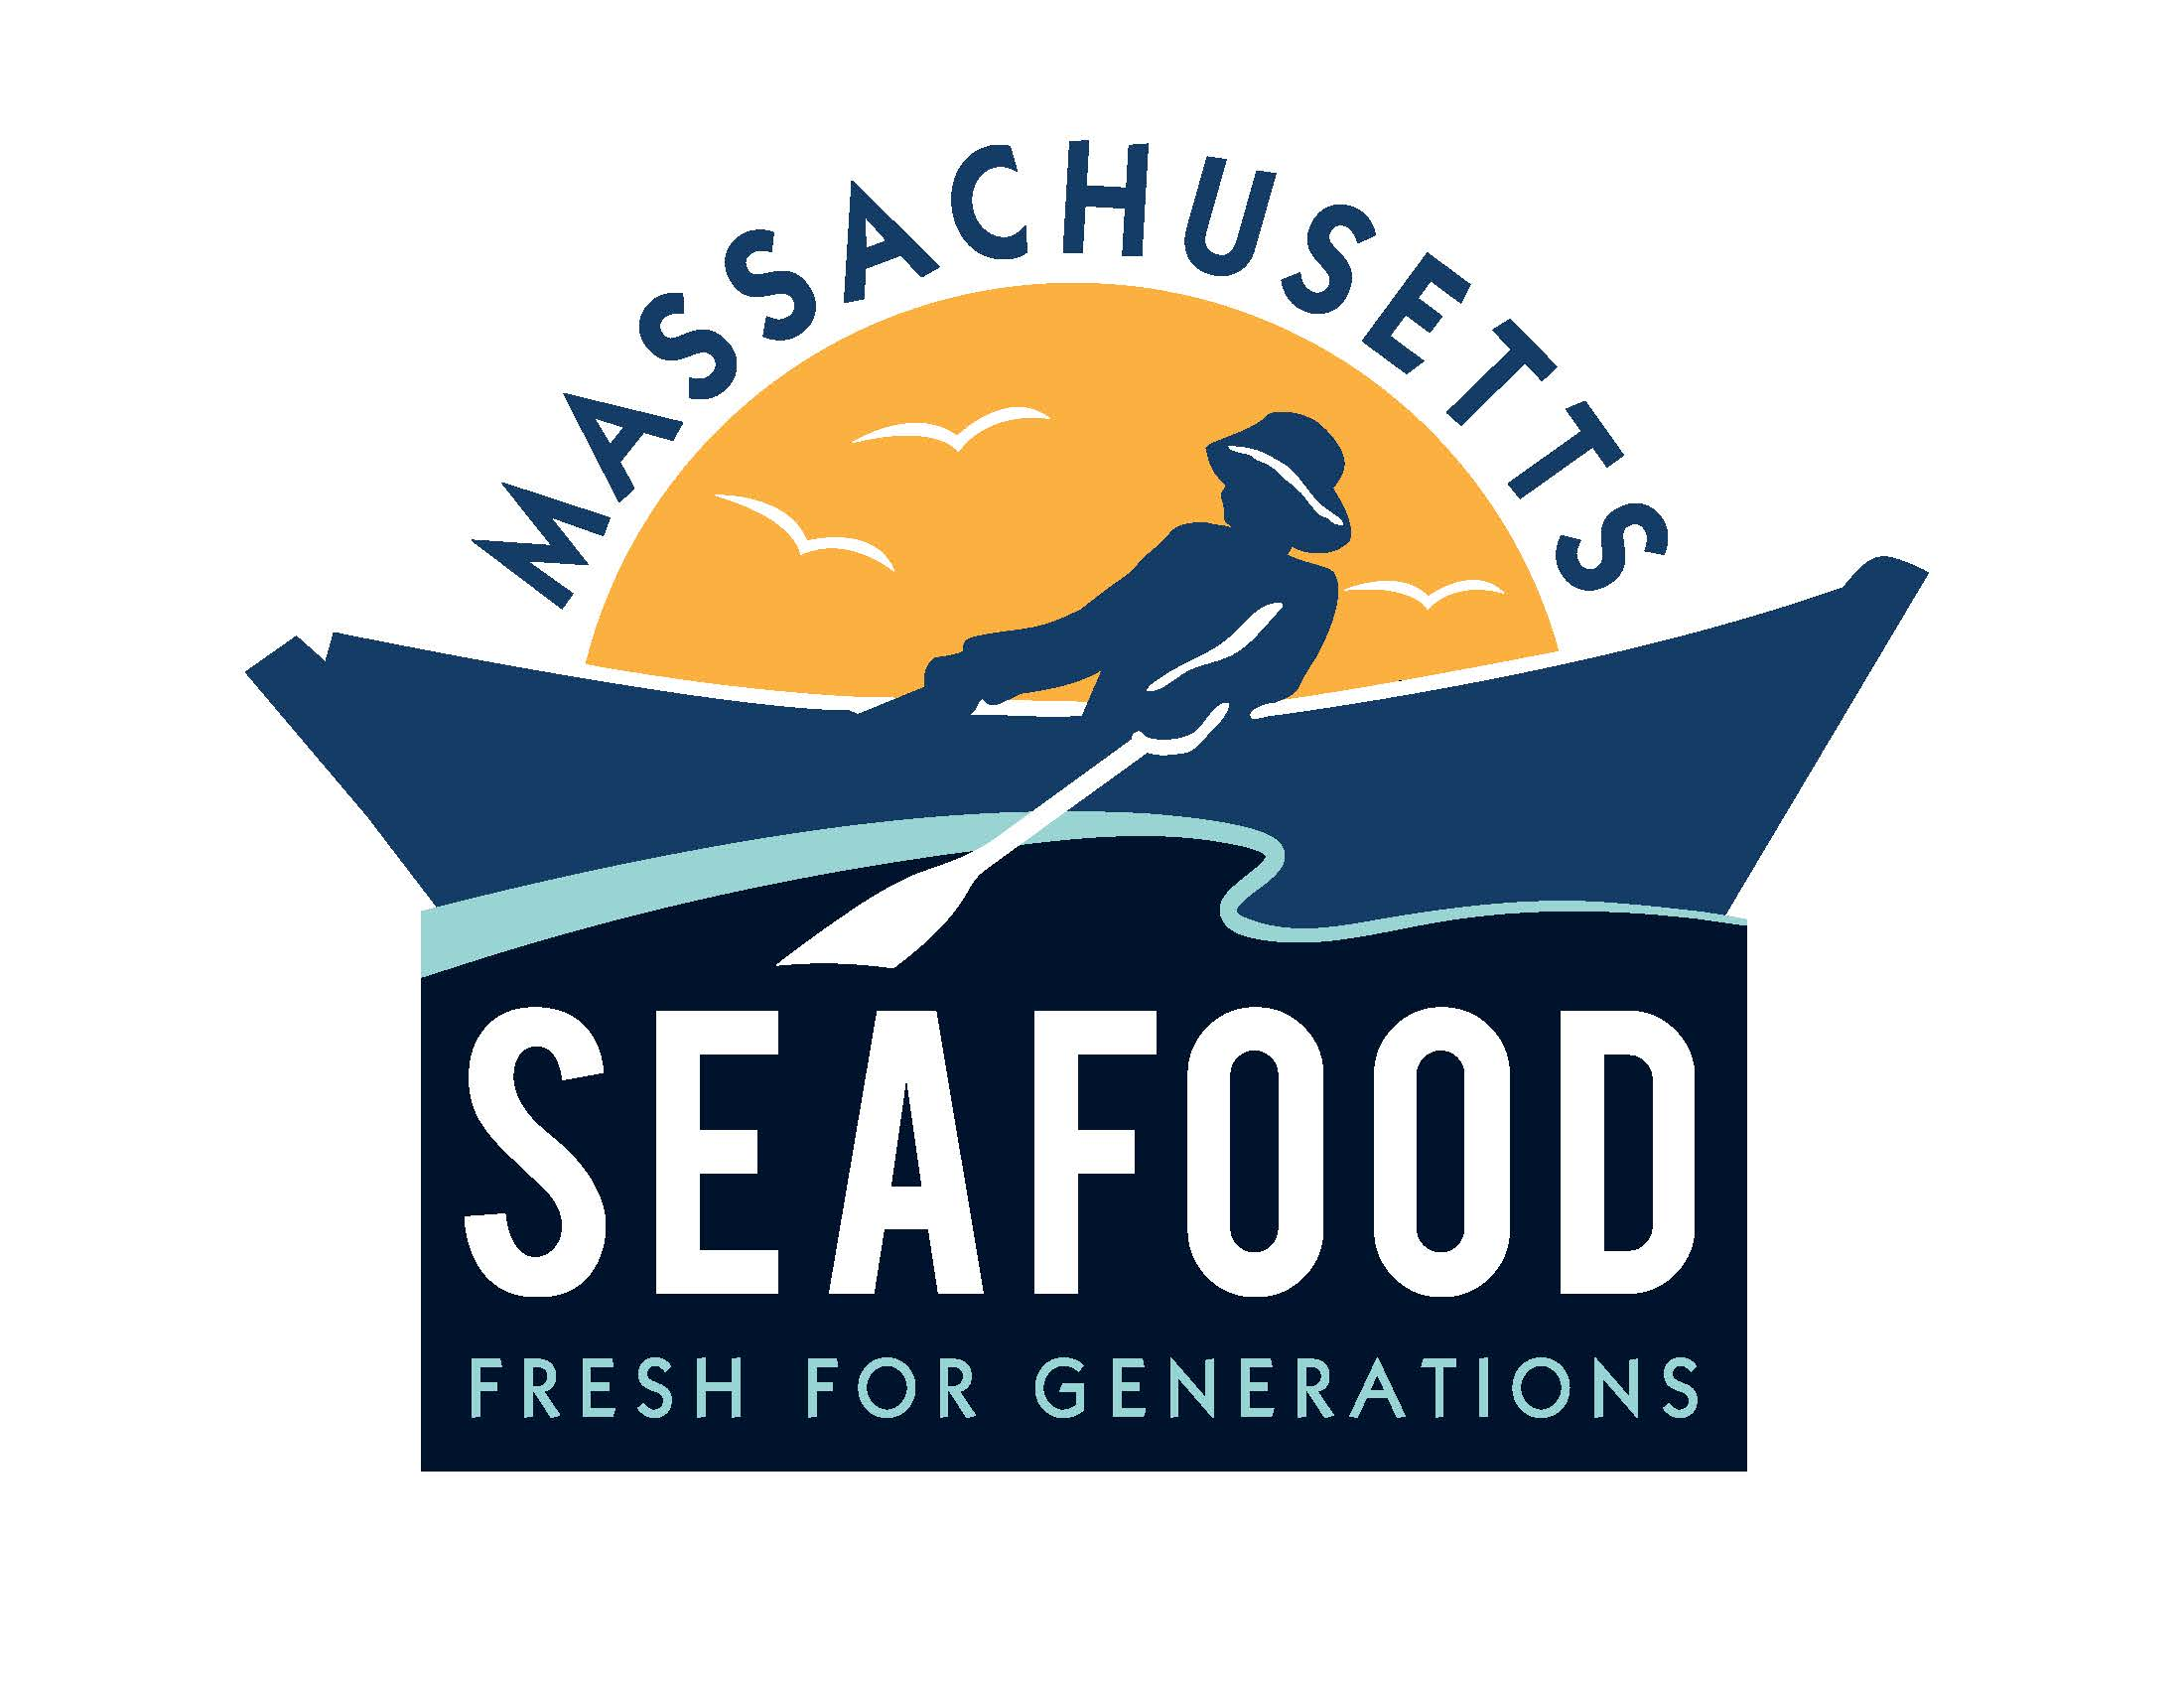 Seafood Marketing Steering Committee